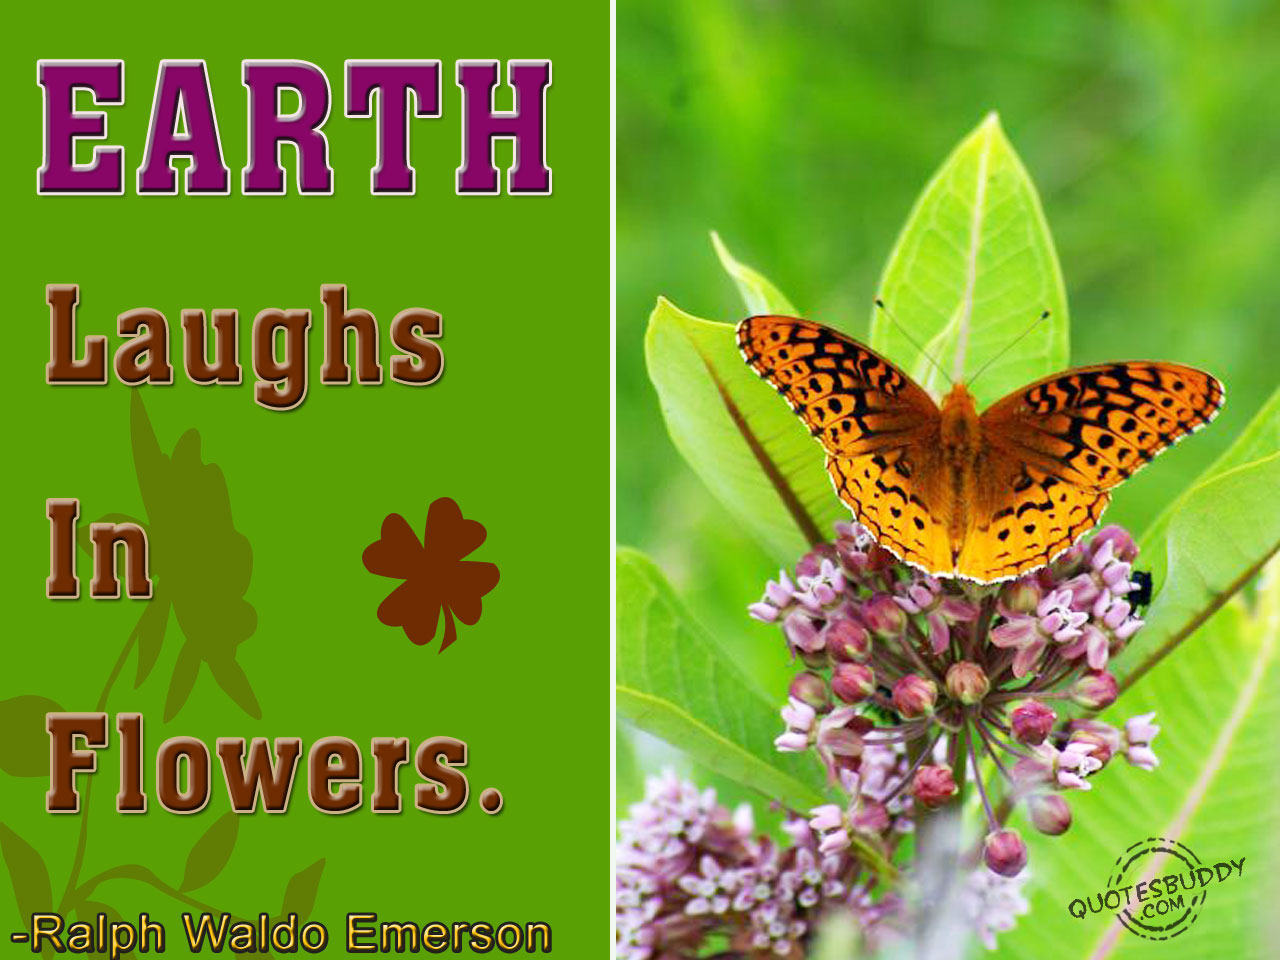 Earth Laugh In Flowers ~ Flowers Quote